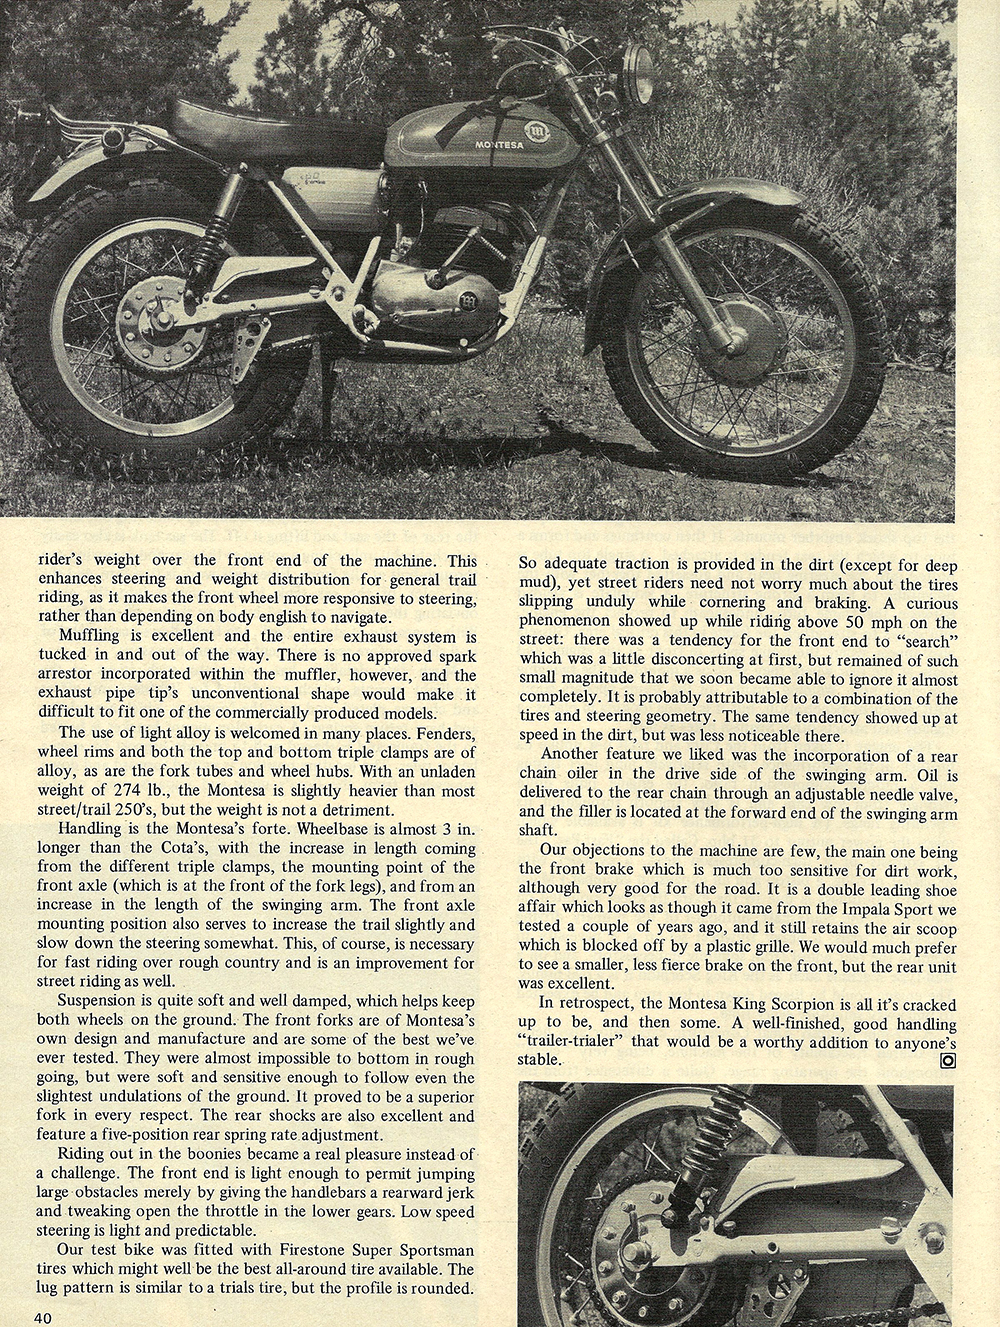 1970 Montesa King Scorpion road test 03.jpg